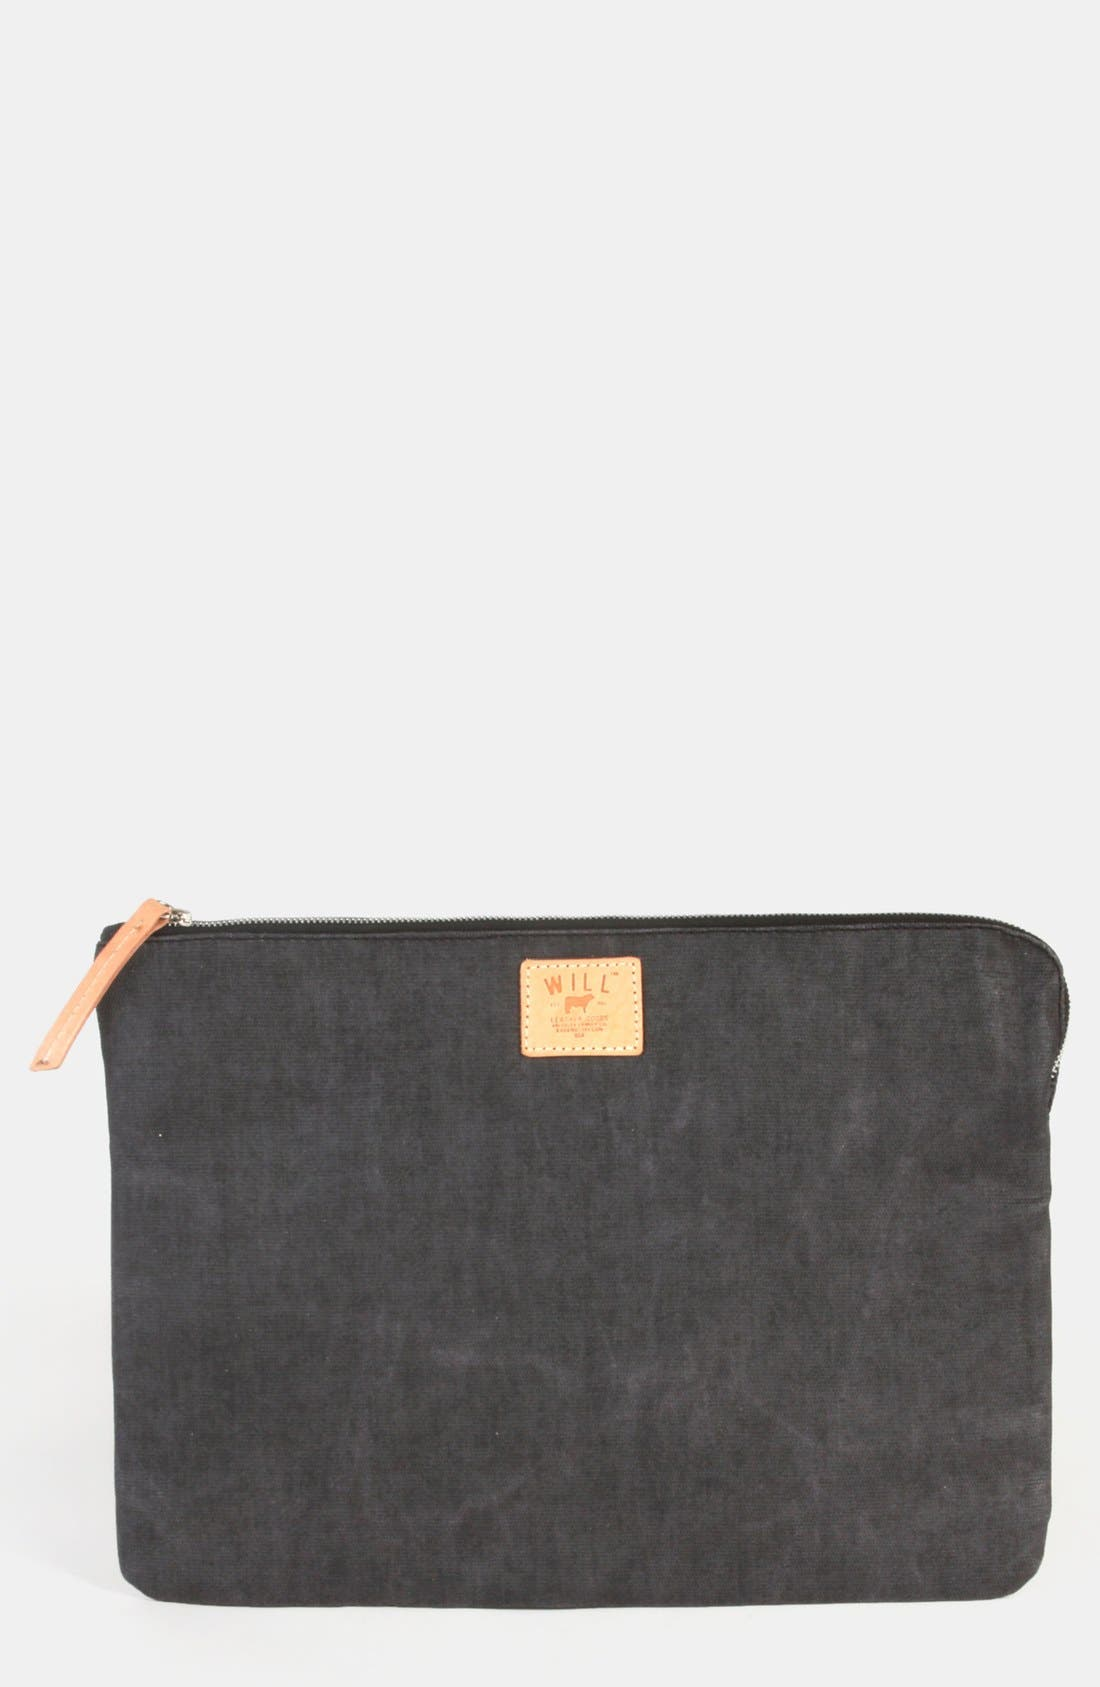 Alternate Image 1 Selected - Will Leather Goods Coated Canvas Laptop Case